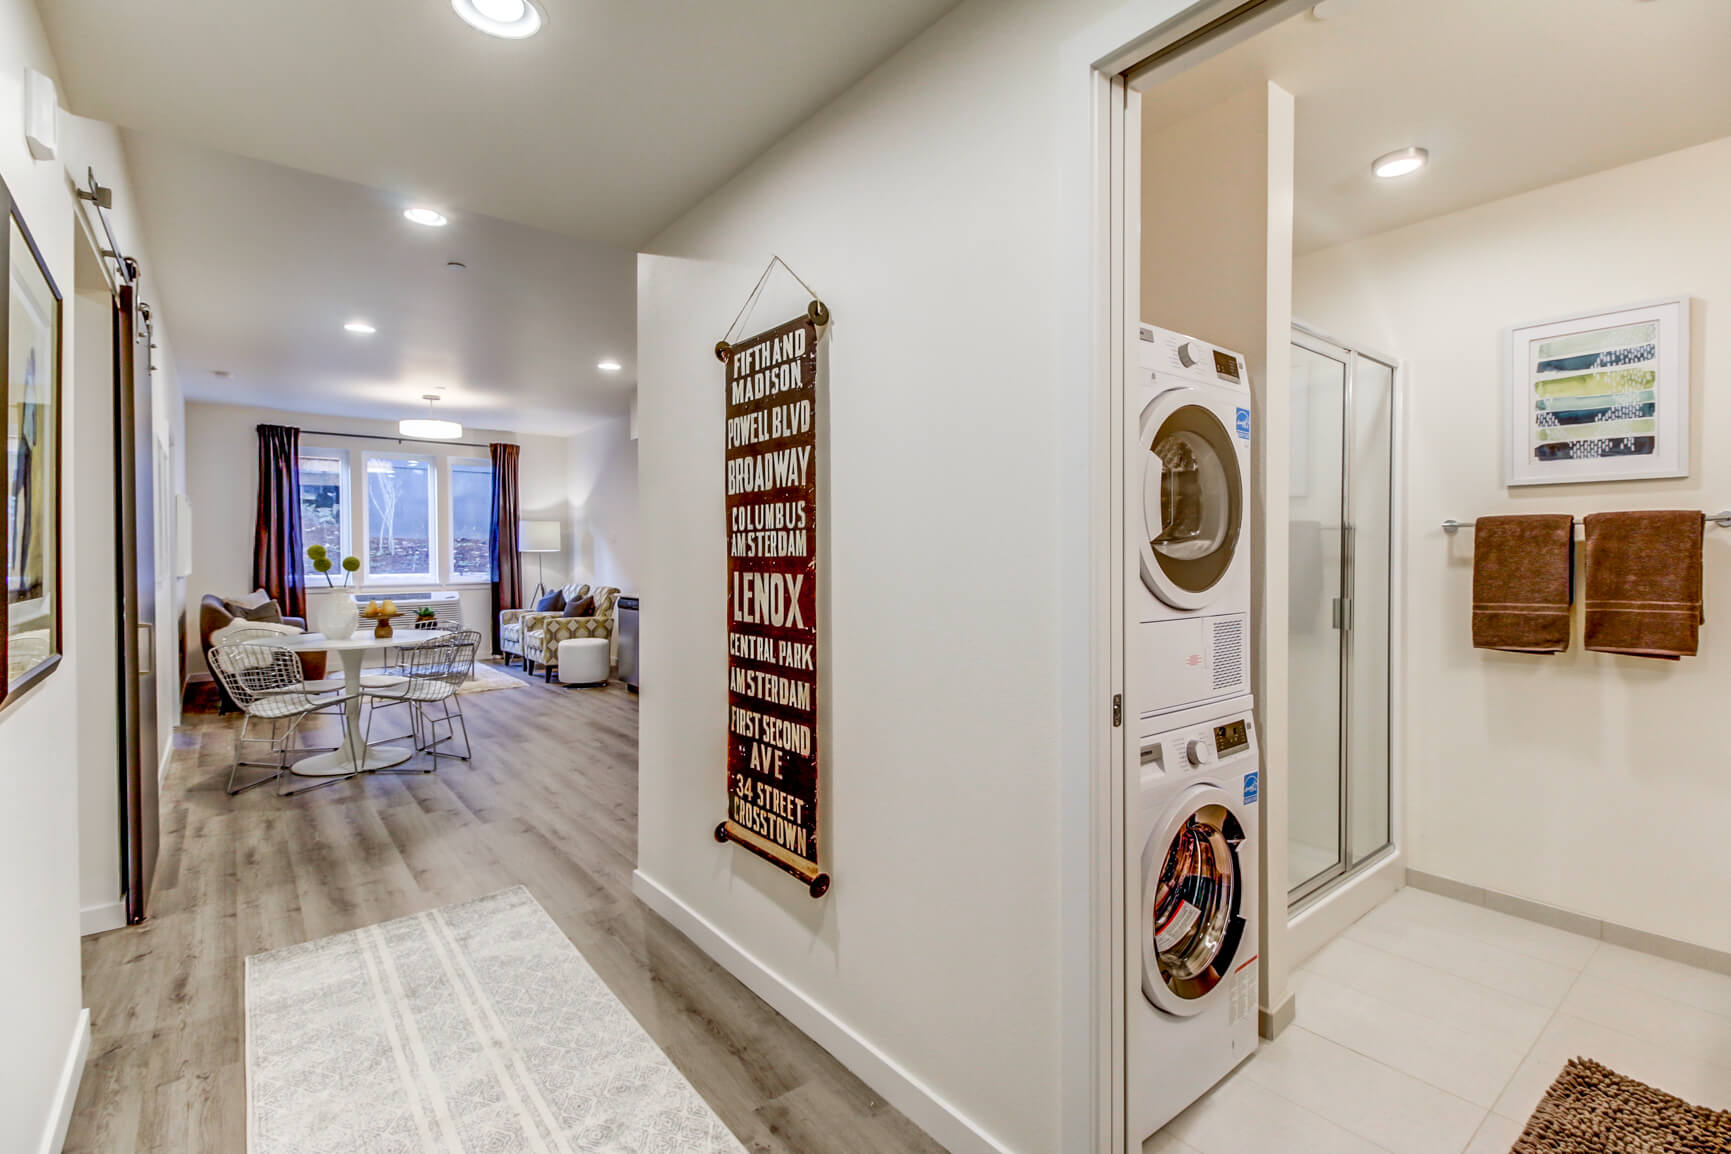 Hallway with view of washer dryer and shower